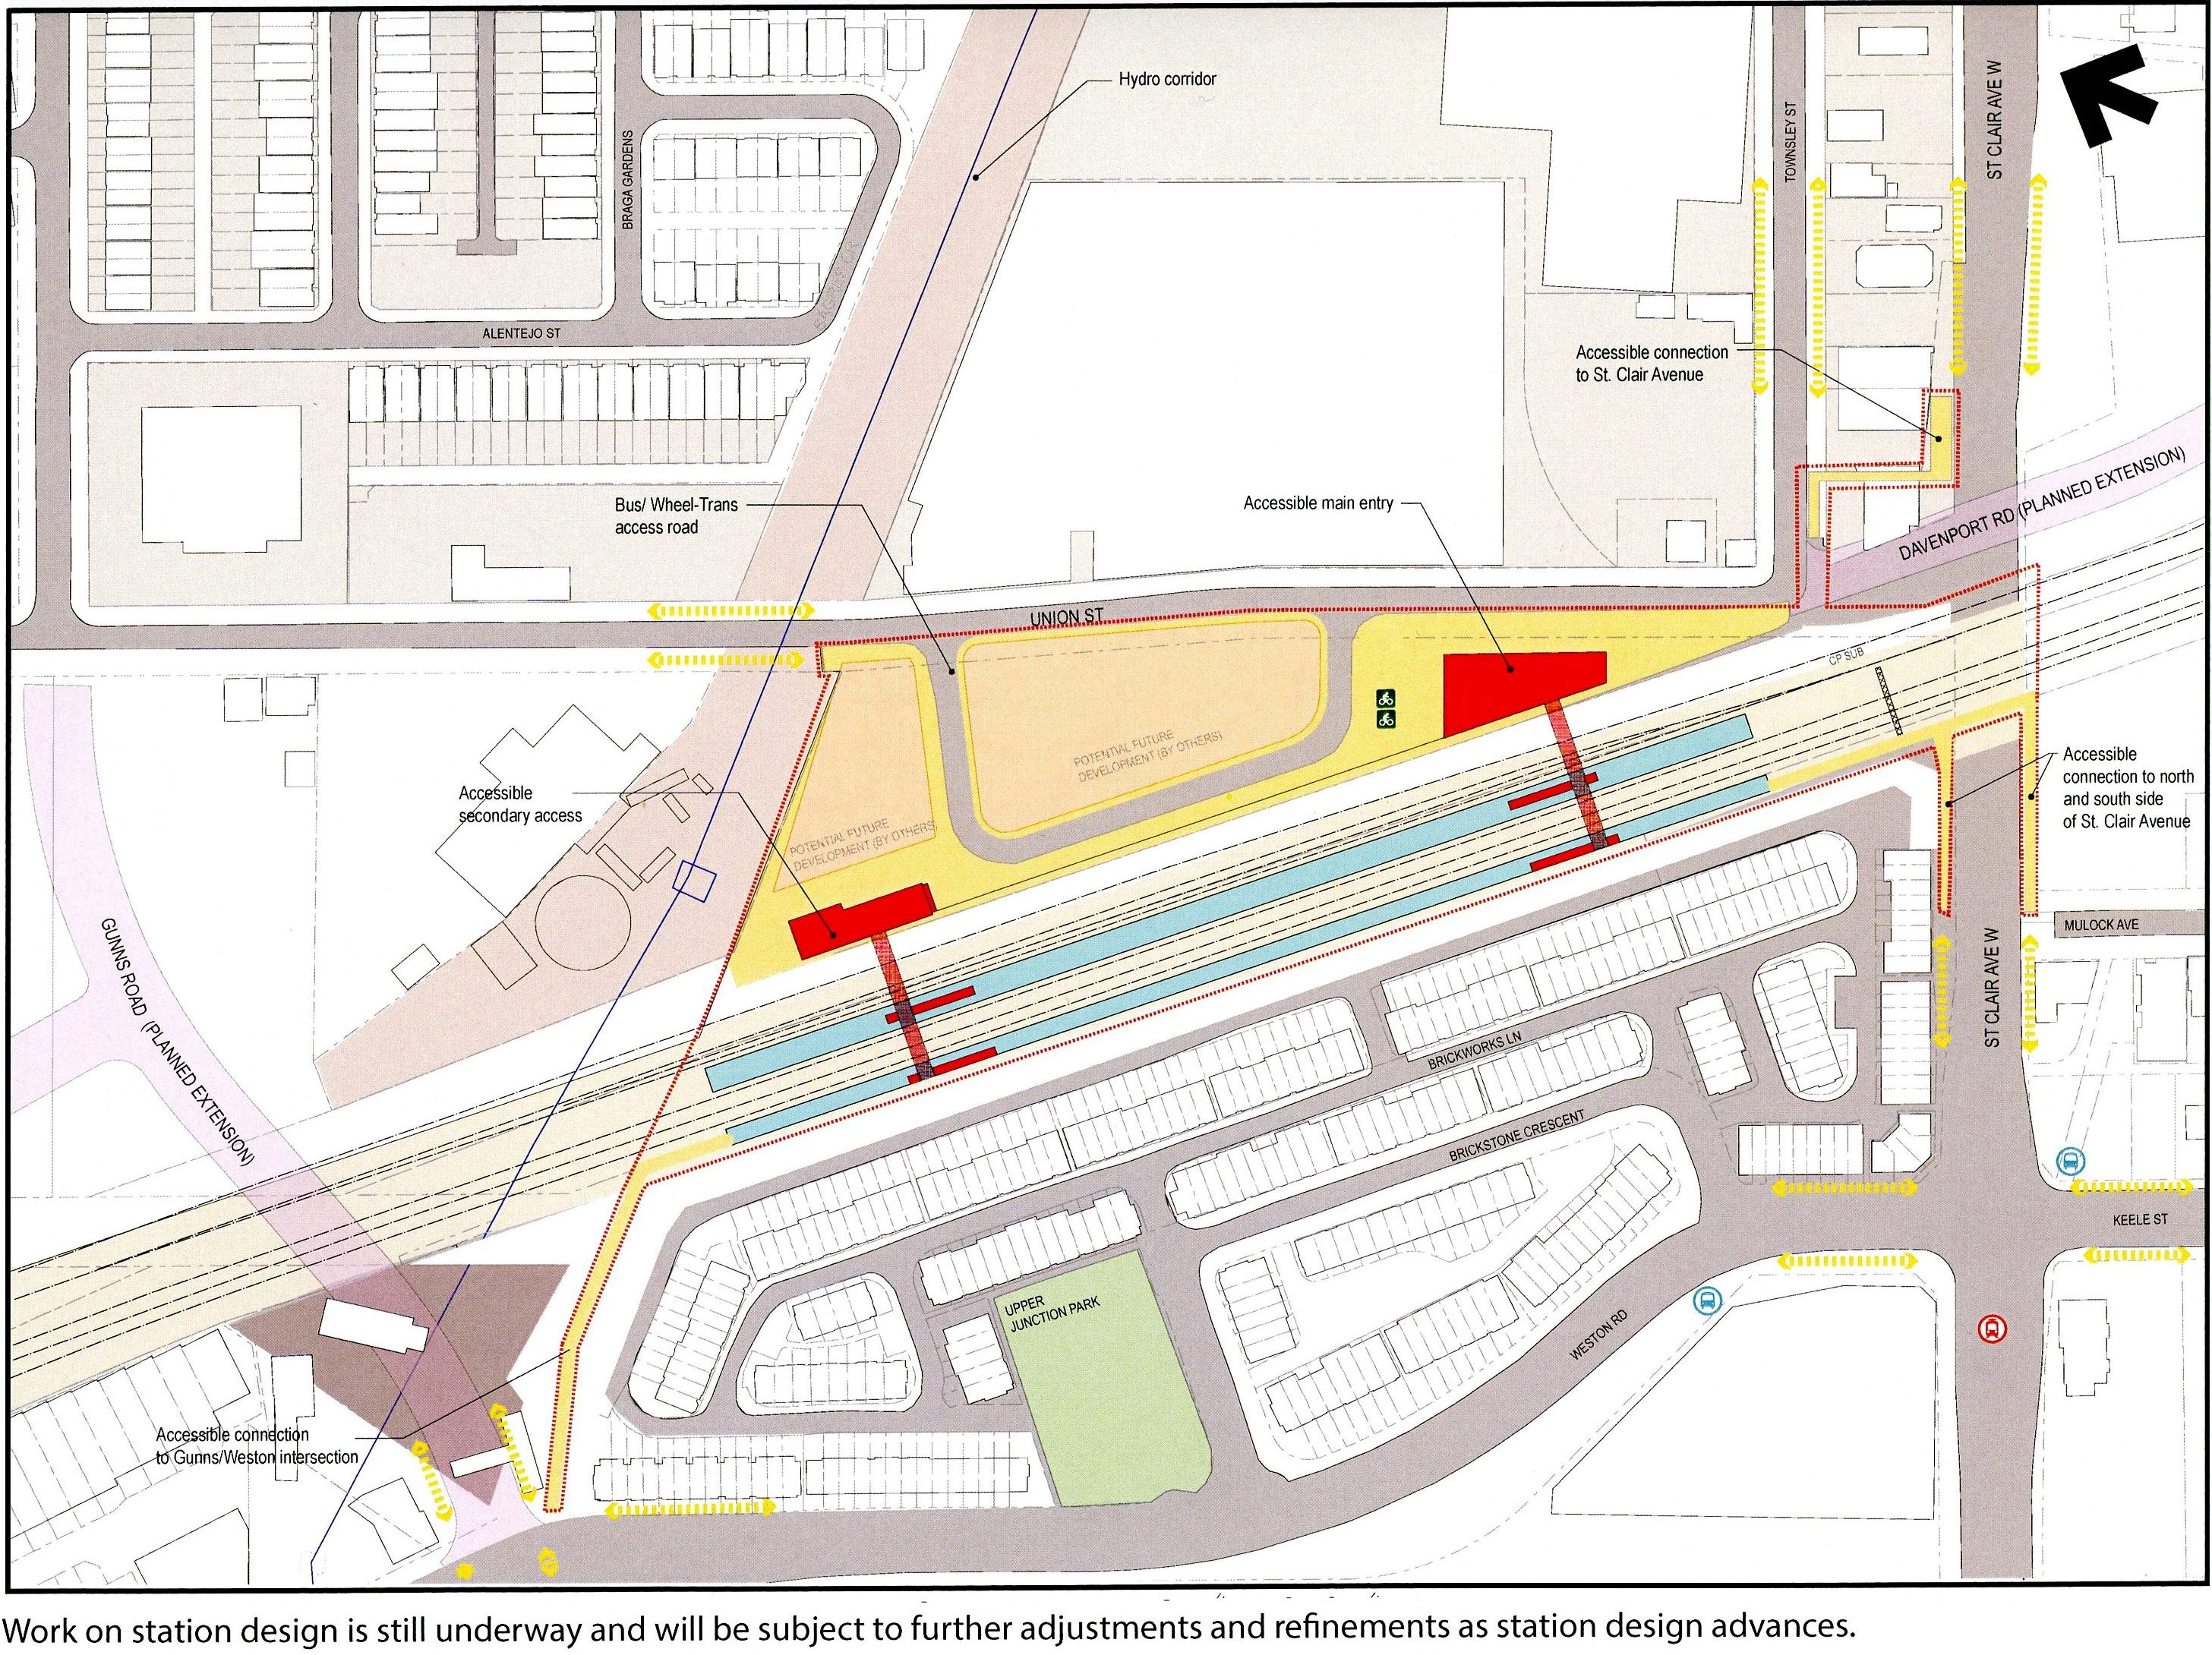 New Smarttrack Go Station Designs Steve Munro Weston Ct Wiring Diagram This Lies North Of St Clair Avenue West And East Road The Design Is Being Co Ordinated With A Transportation Master Plan Now Underway